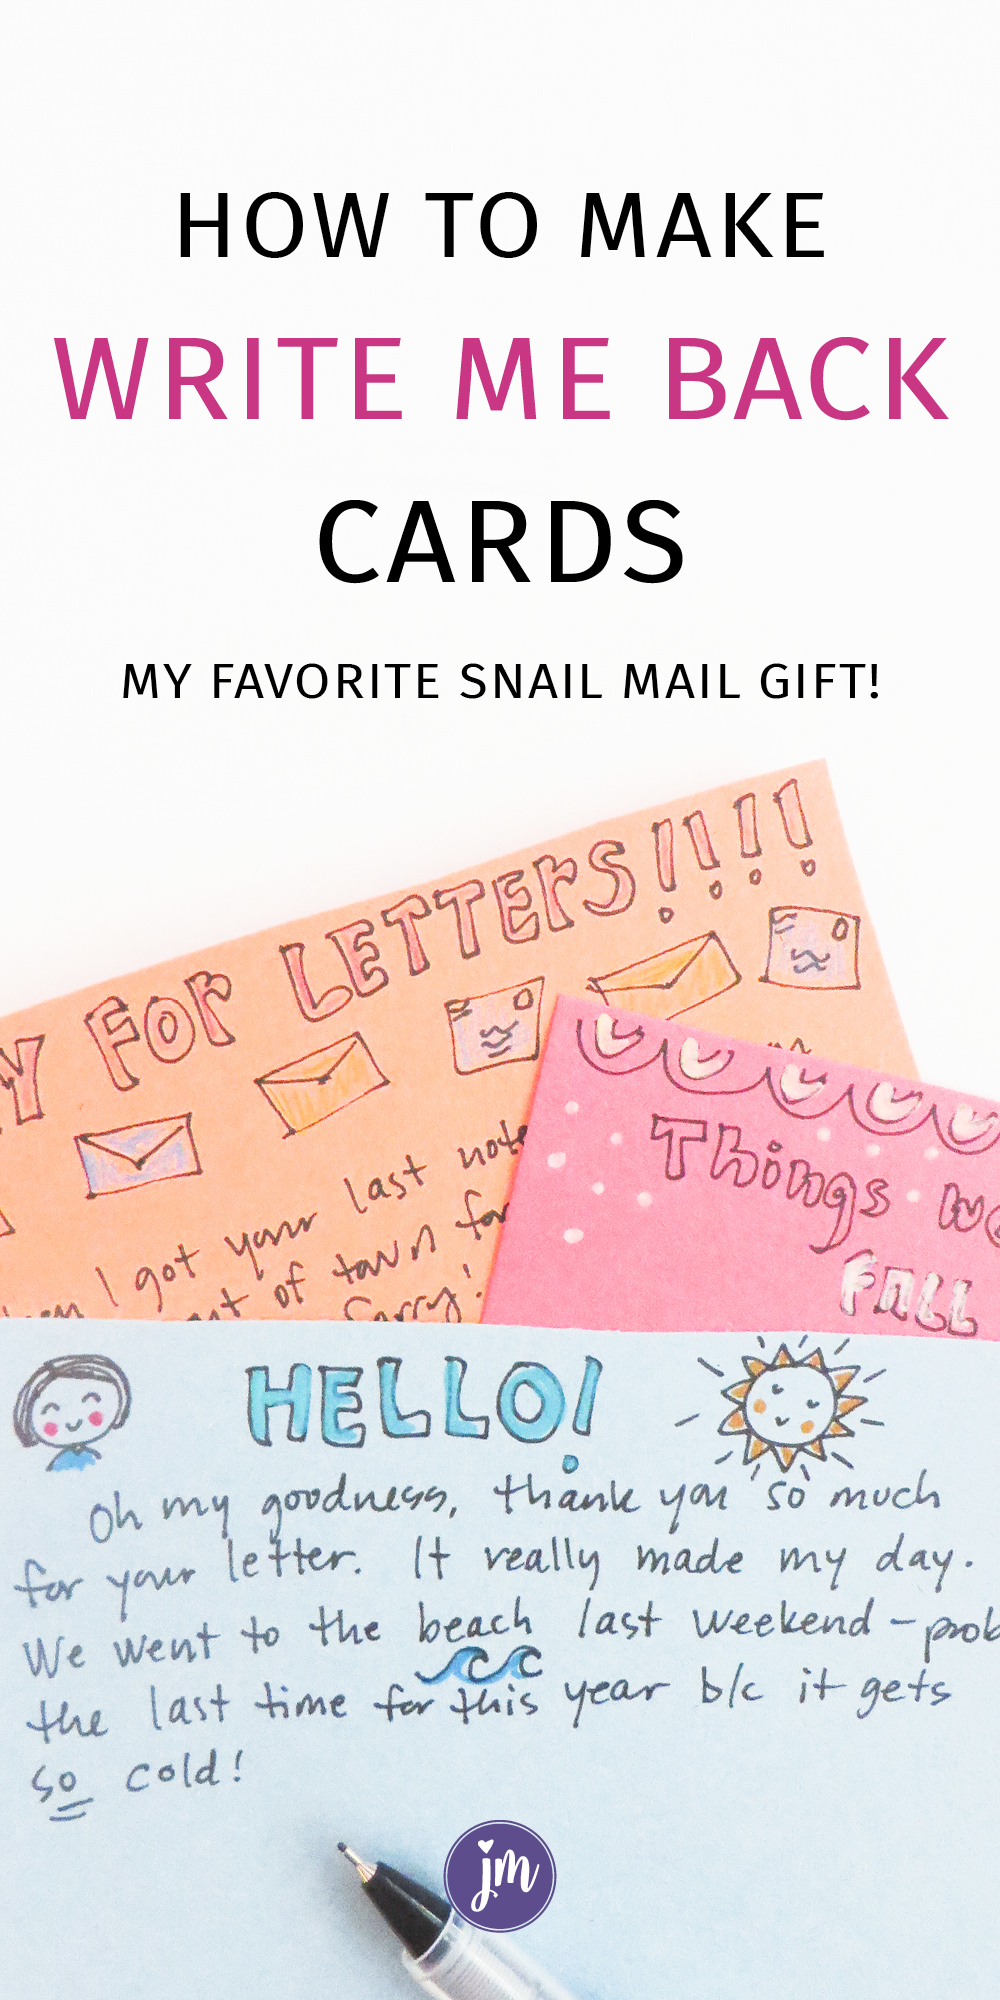 I LOVE these write me back cards! They are seriously one of my favorite snail mail and letter writing gifts ever. Great for best friends, boyfriends, grandkids . . . And it's simple and sweet too! #letterwriting